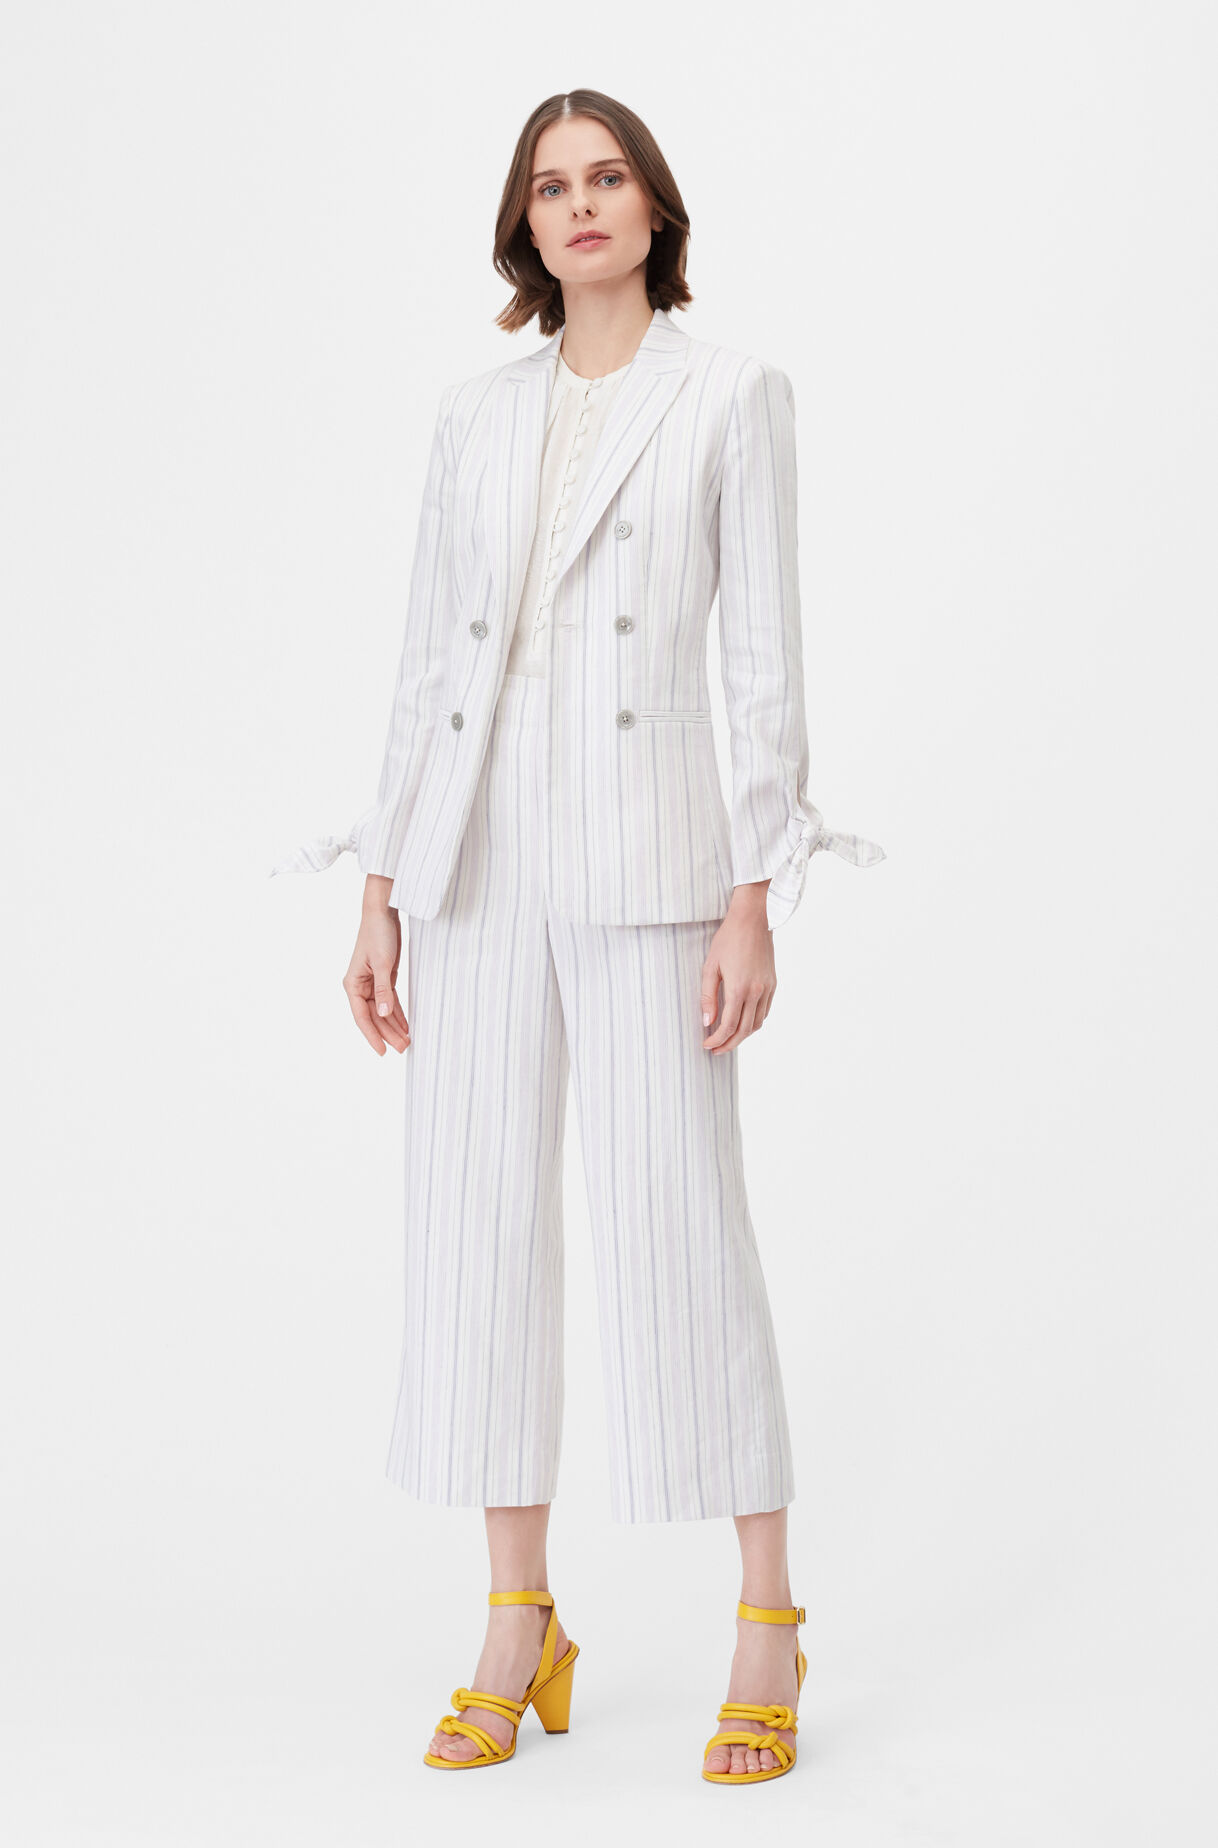 Tailored Stripe Suiting Jacket, , large